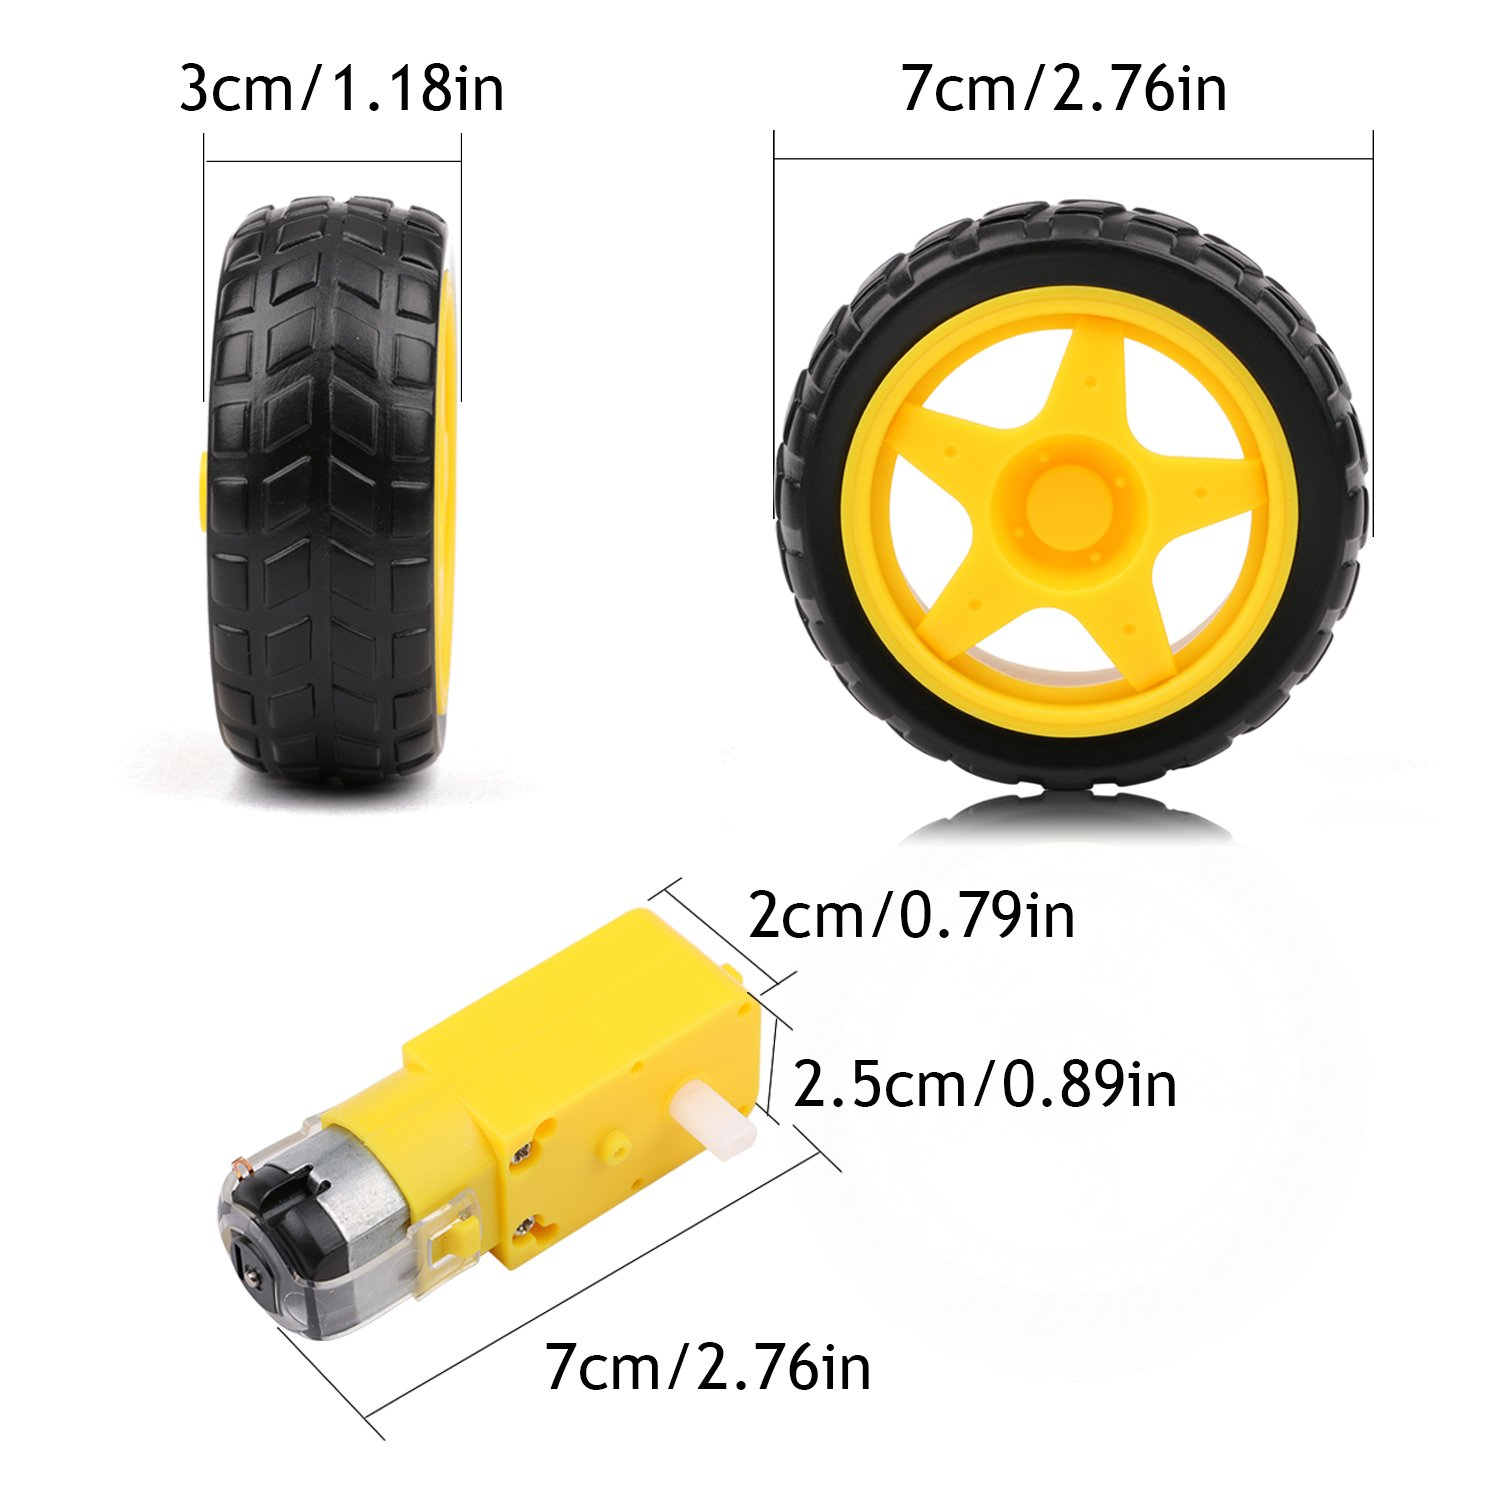 4PCs DC Electric Motor 3-6V Dual Shaft Geared TT Magnetic Gearbox Engine with 4Pcs Plastic Toy Car Tire Wheel, Mini Φ67mm Smart RC Car Robot Tyres Model Gear Parts, Yeeco by Yeeco (Image #3)